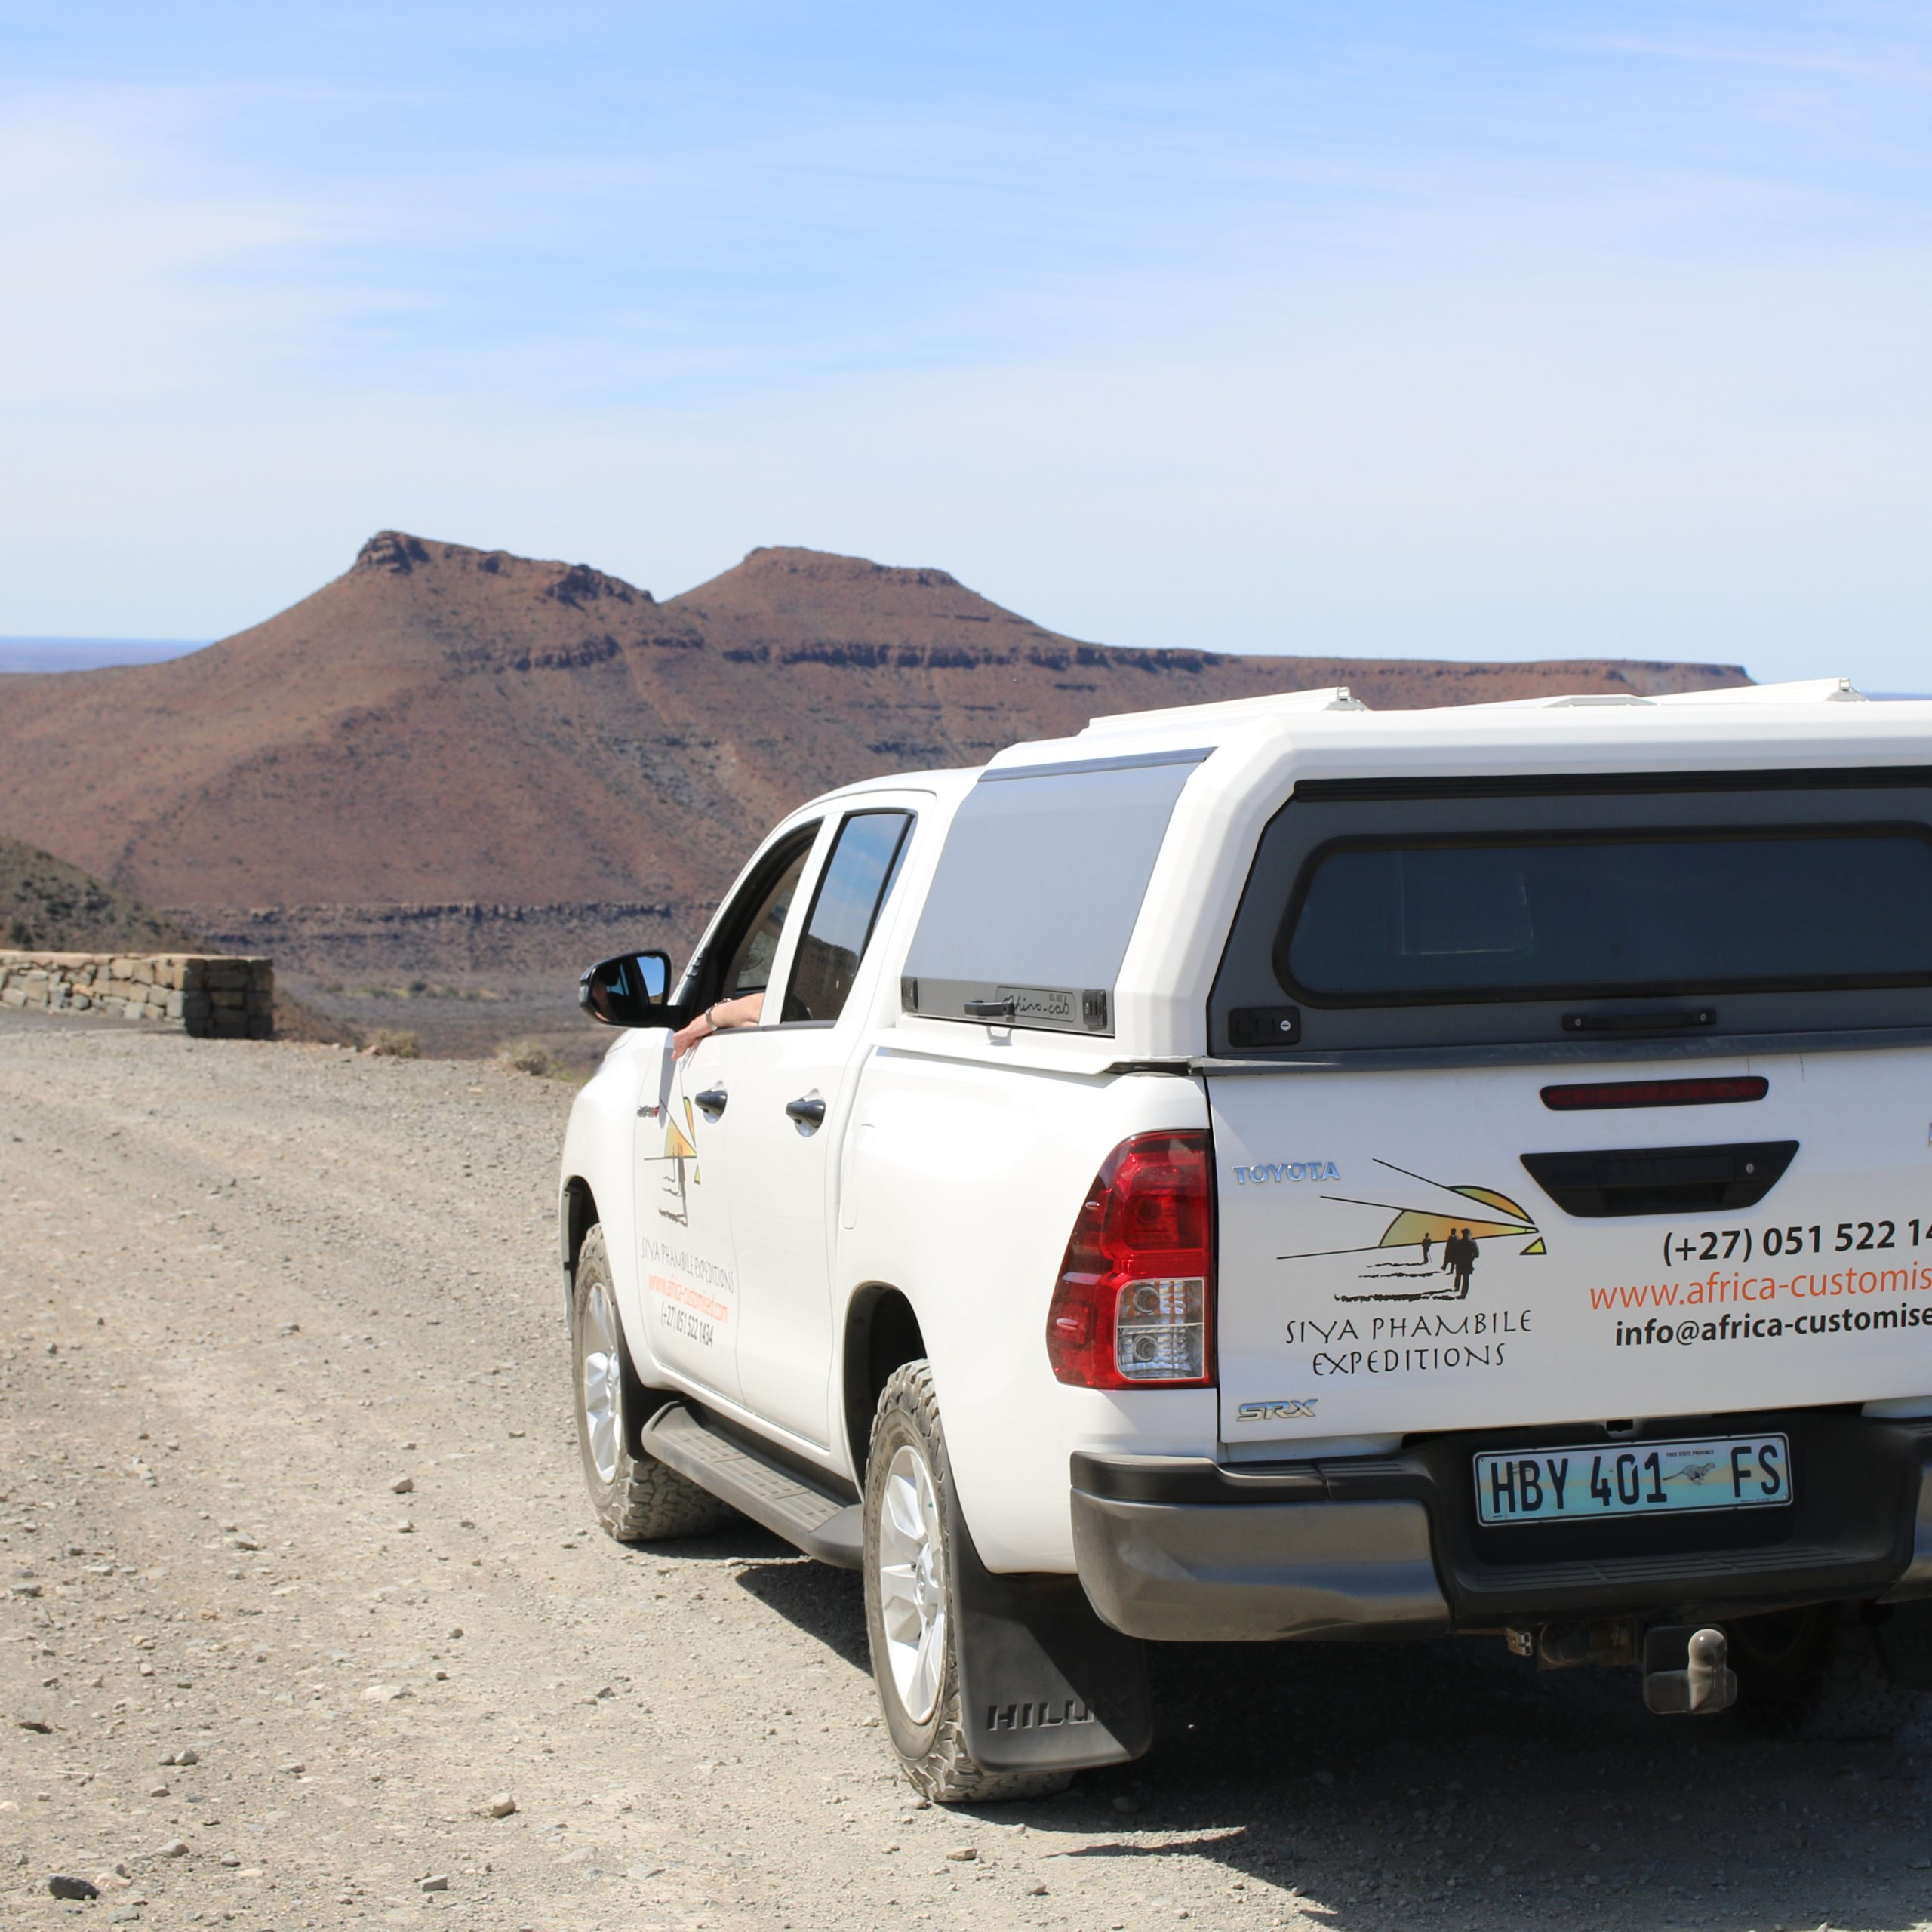 Day 9 | The Great Karoo Landscape